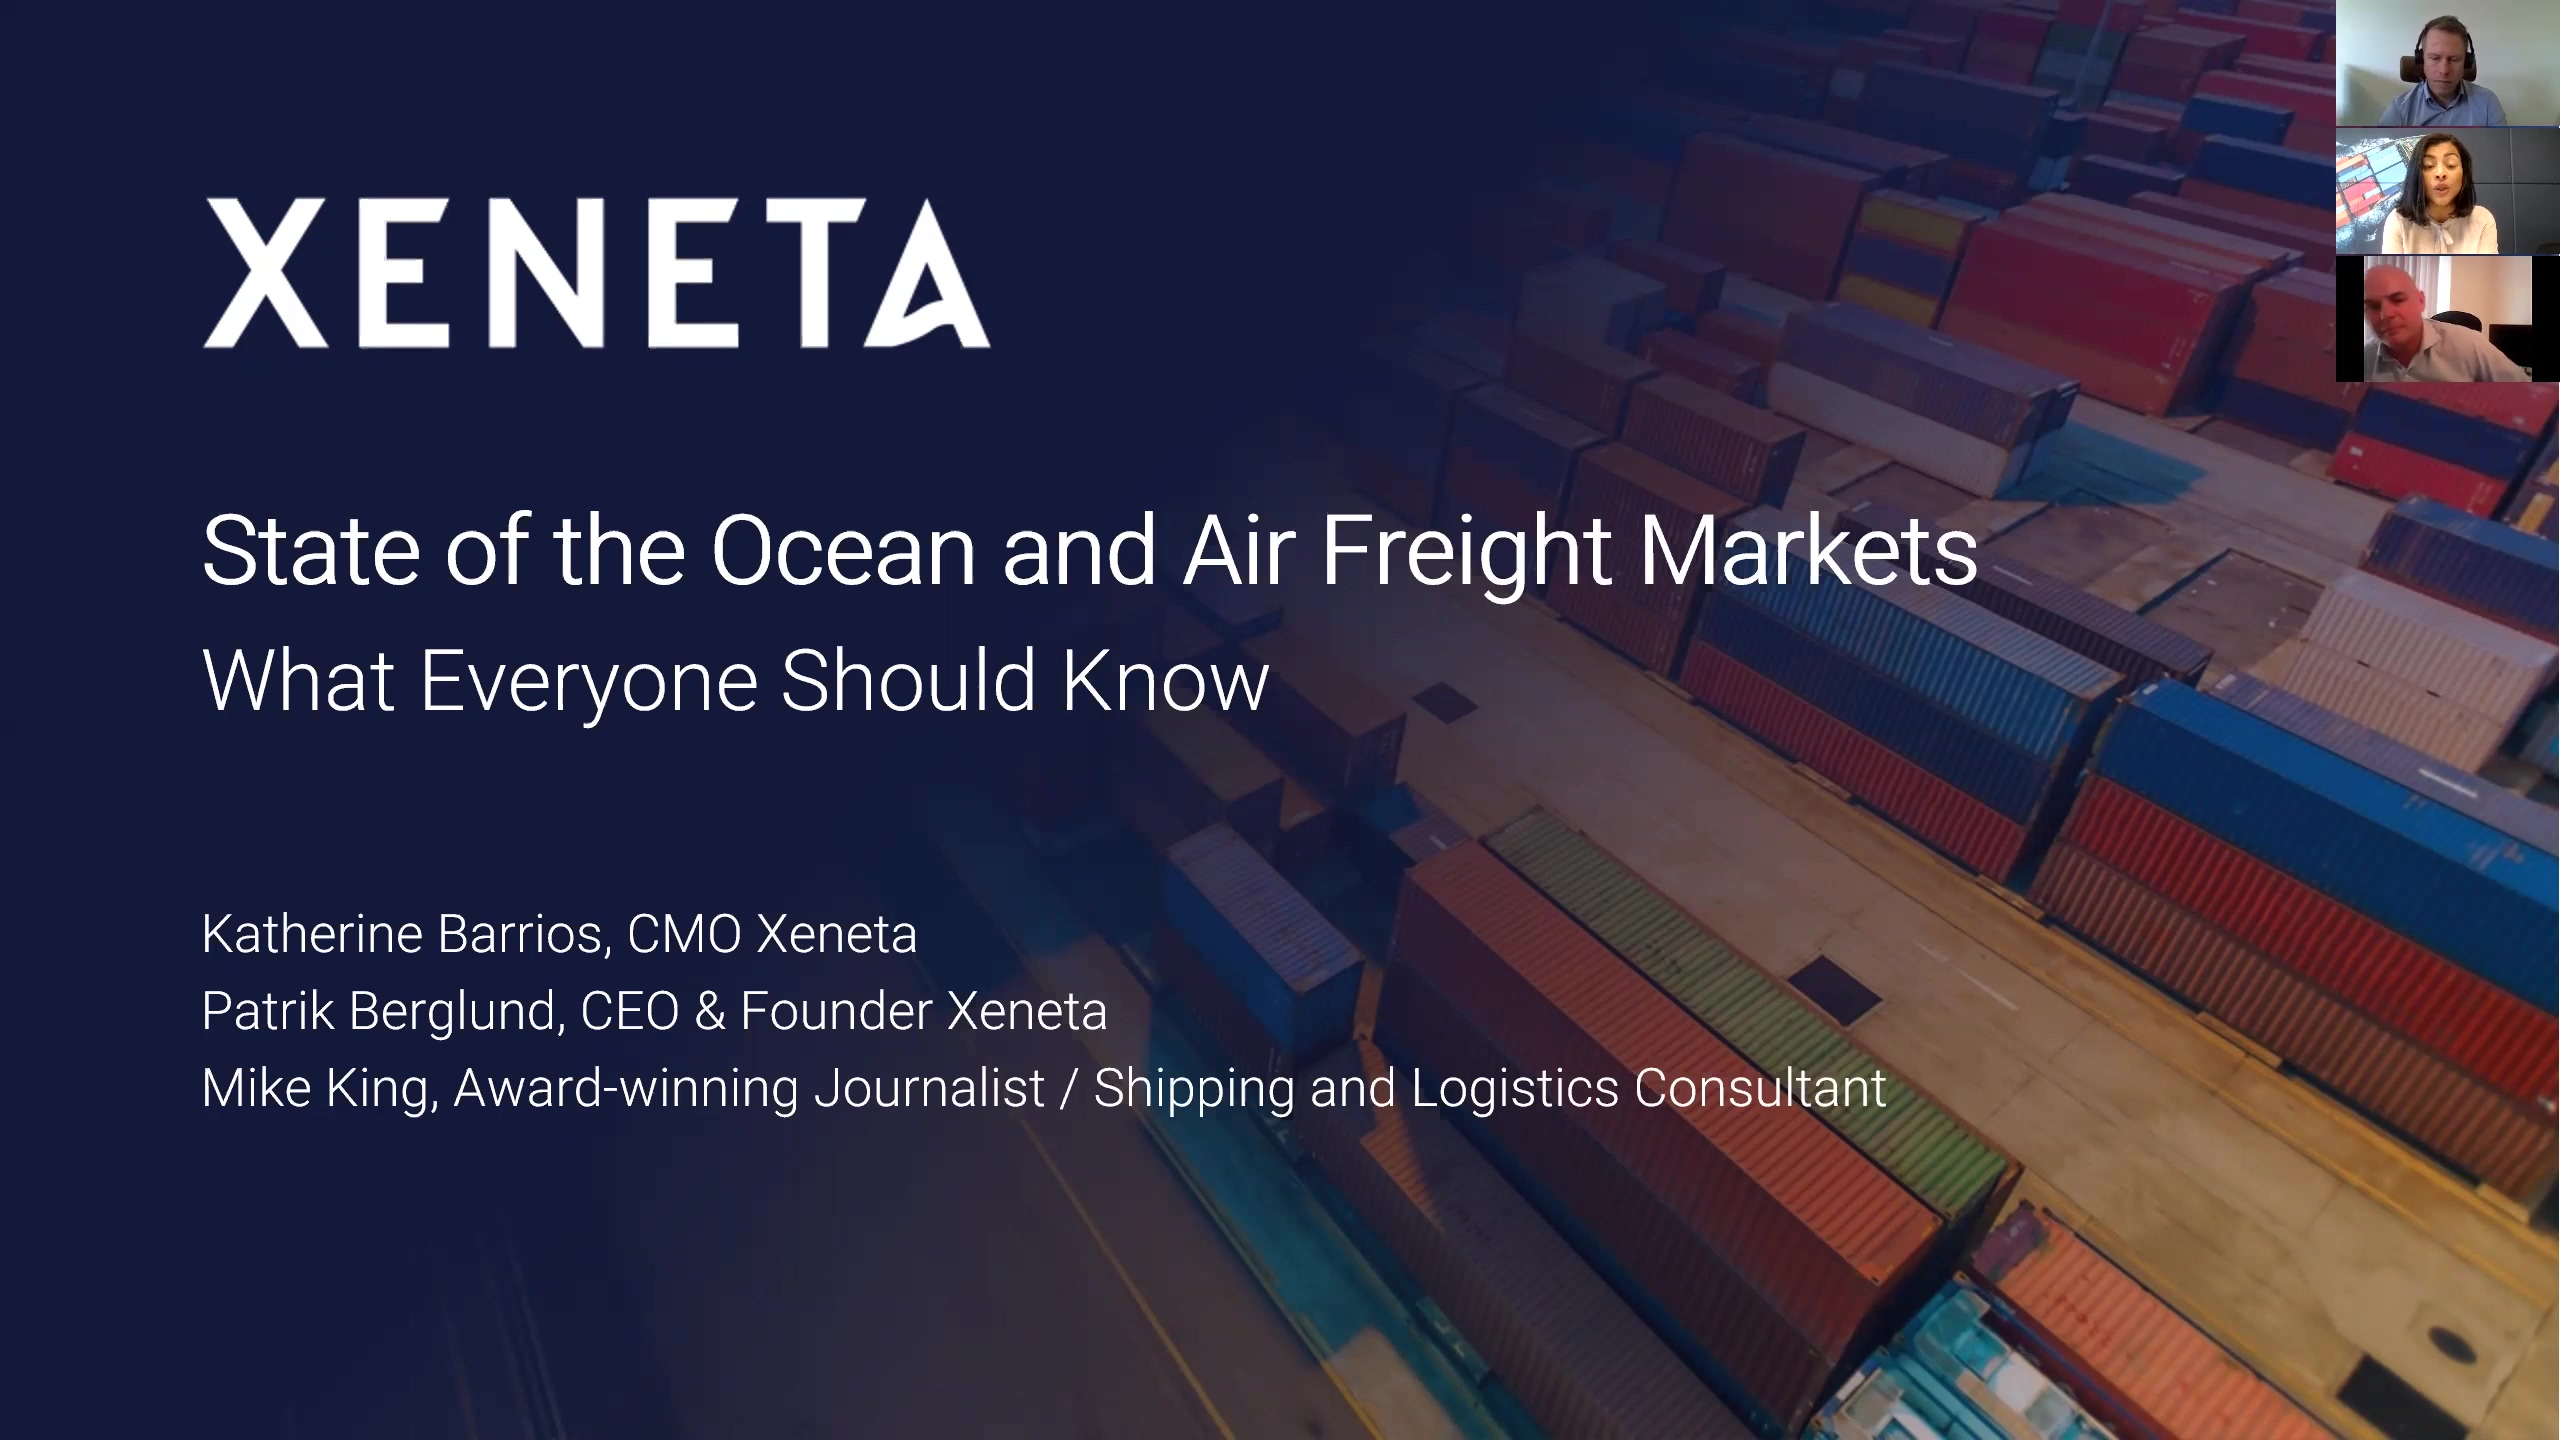 State of the Ocean and Air Freight Markets - What Everyone Should Know - June 2019